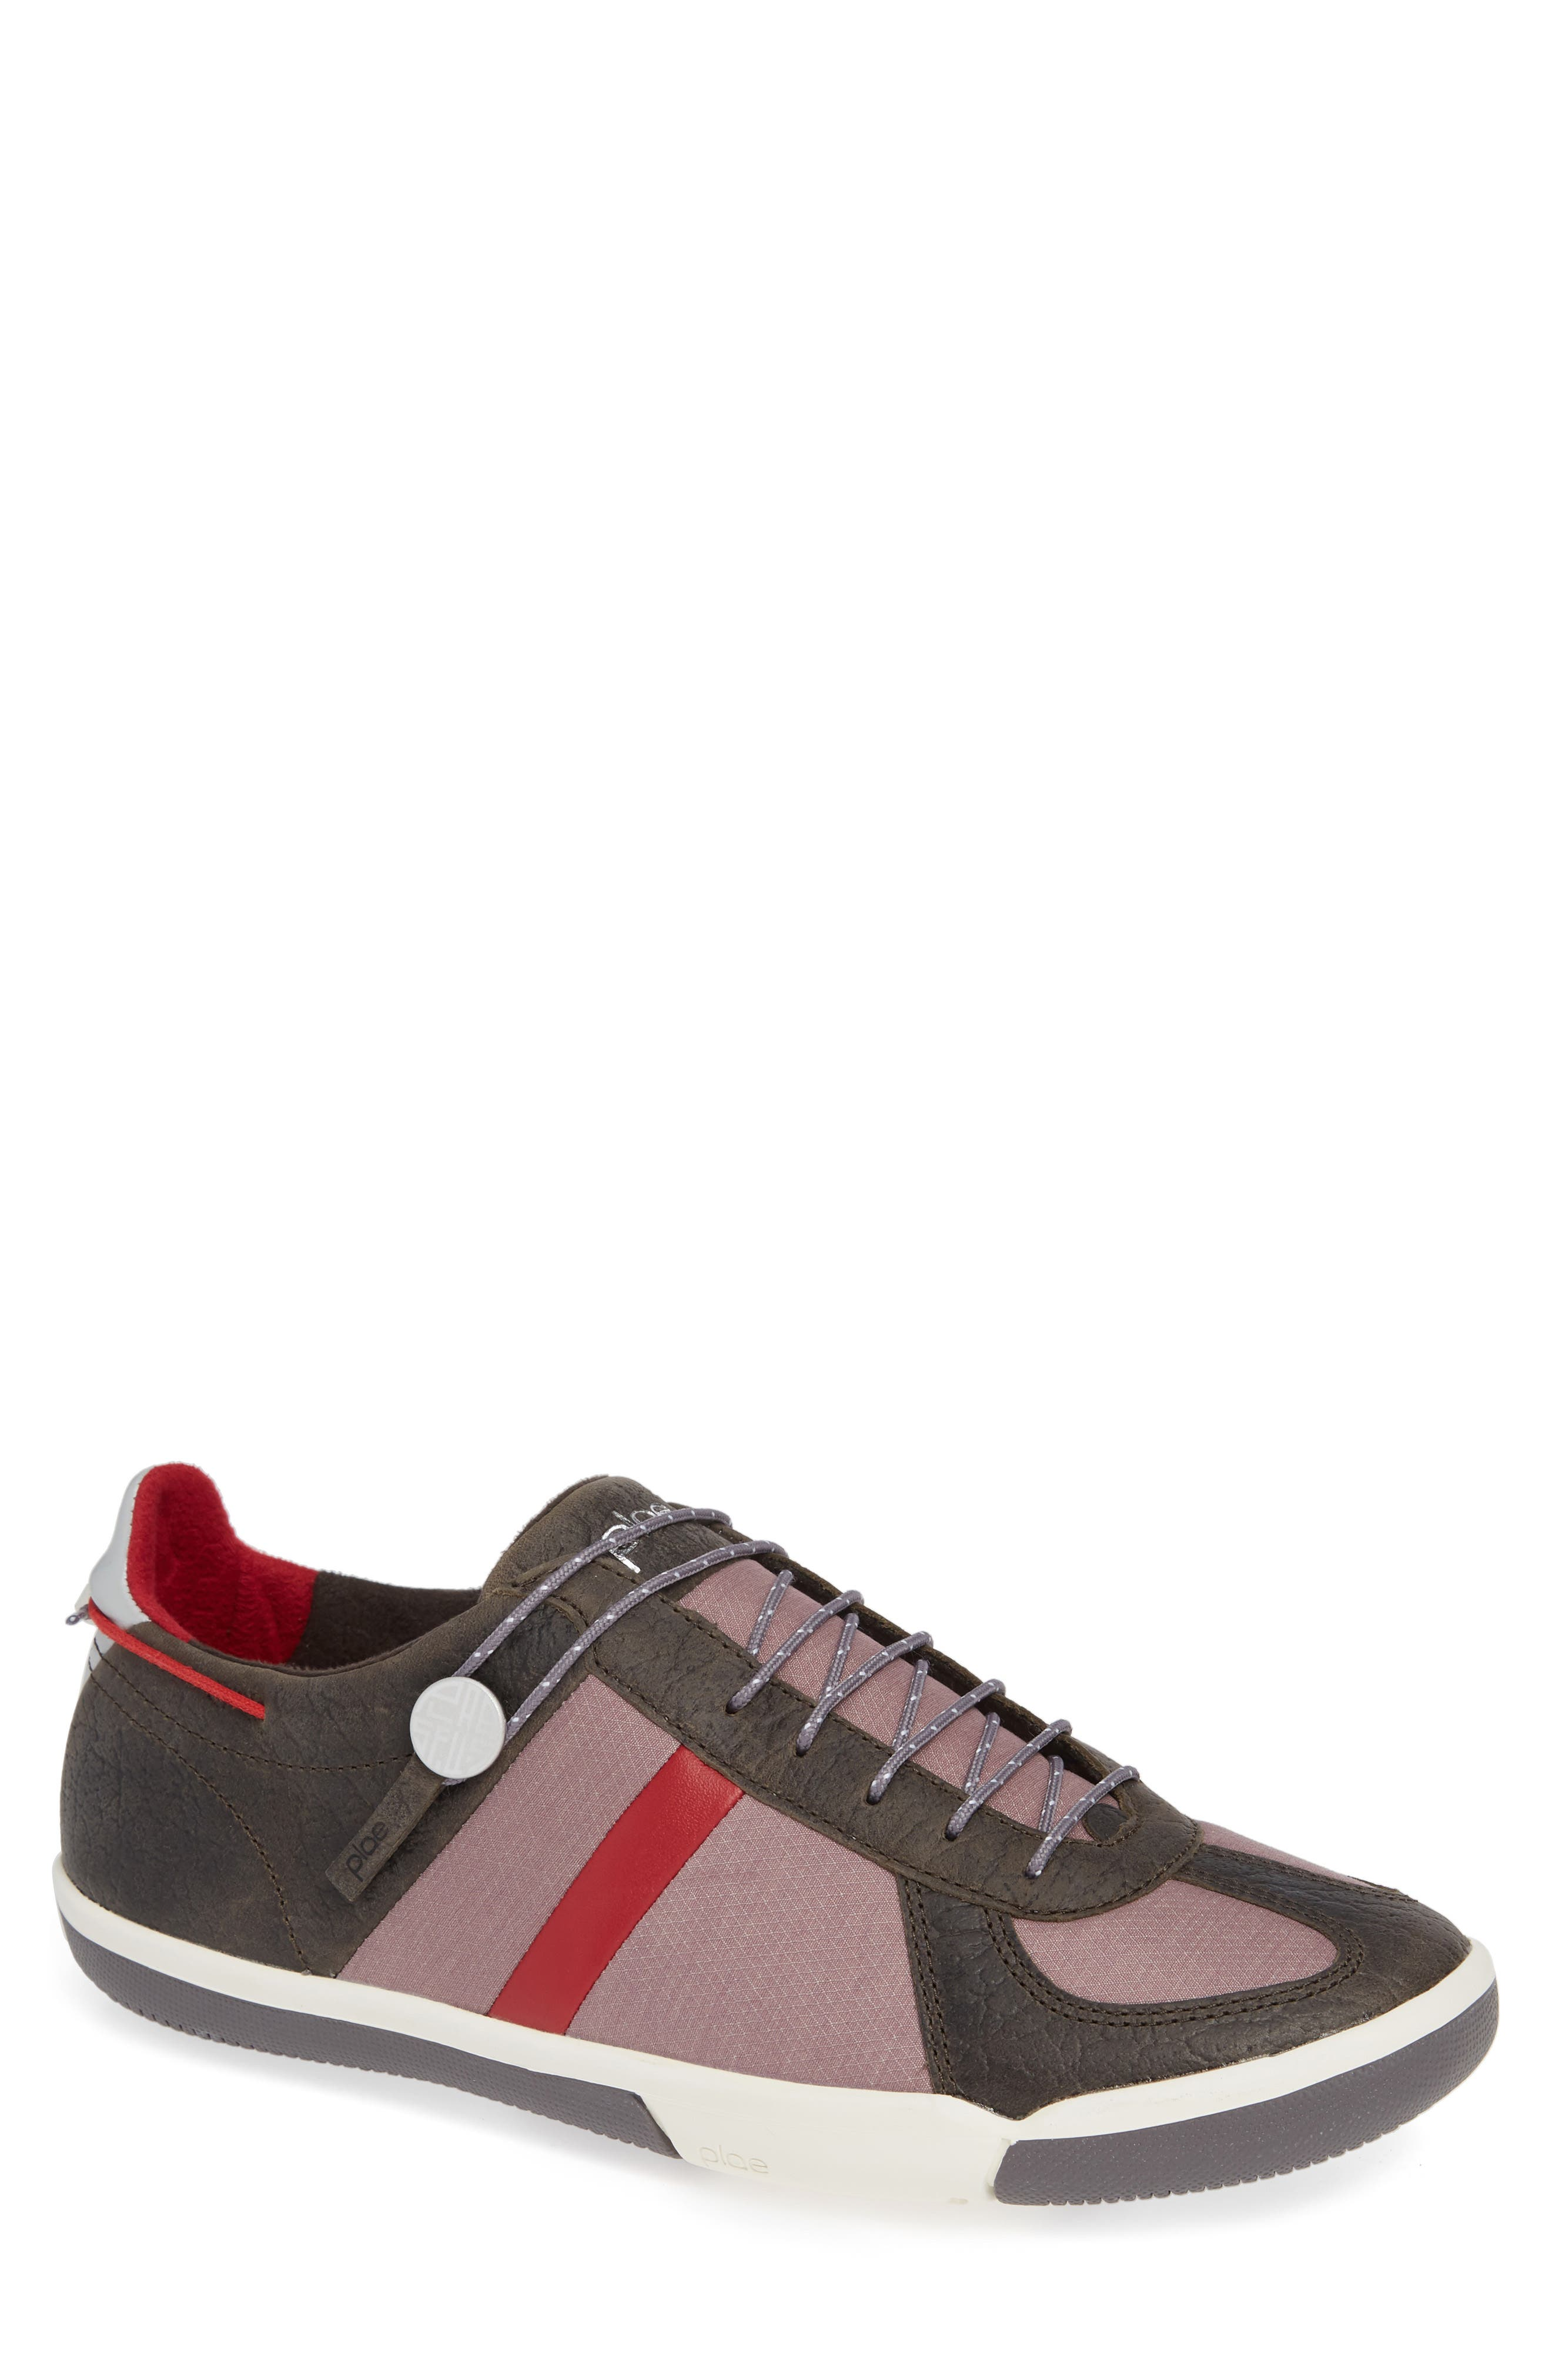 Butler Low-Top Sneaker,                             Main thumbnail 1, color,                             EMBER BROWN LEATHER